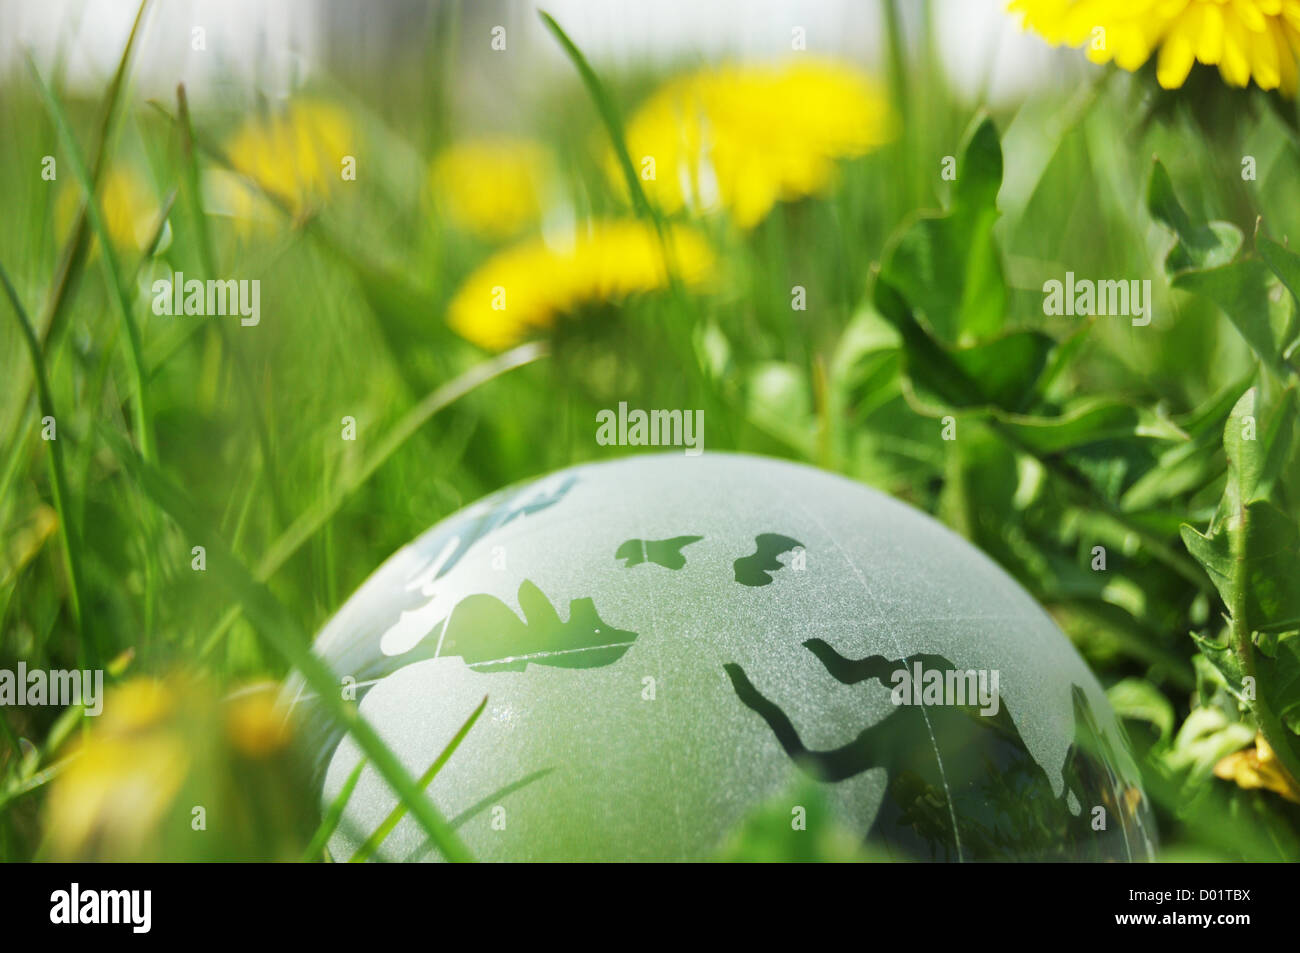 glass globe or earth in green grass showing eco concept with copyspace - Stock Image